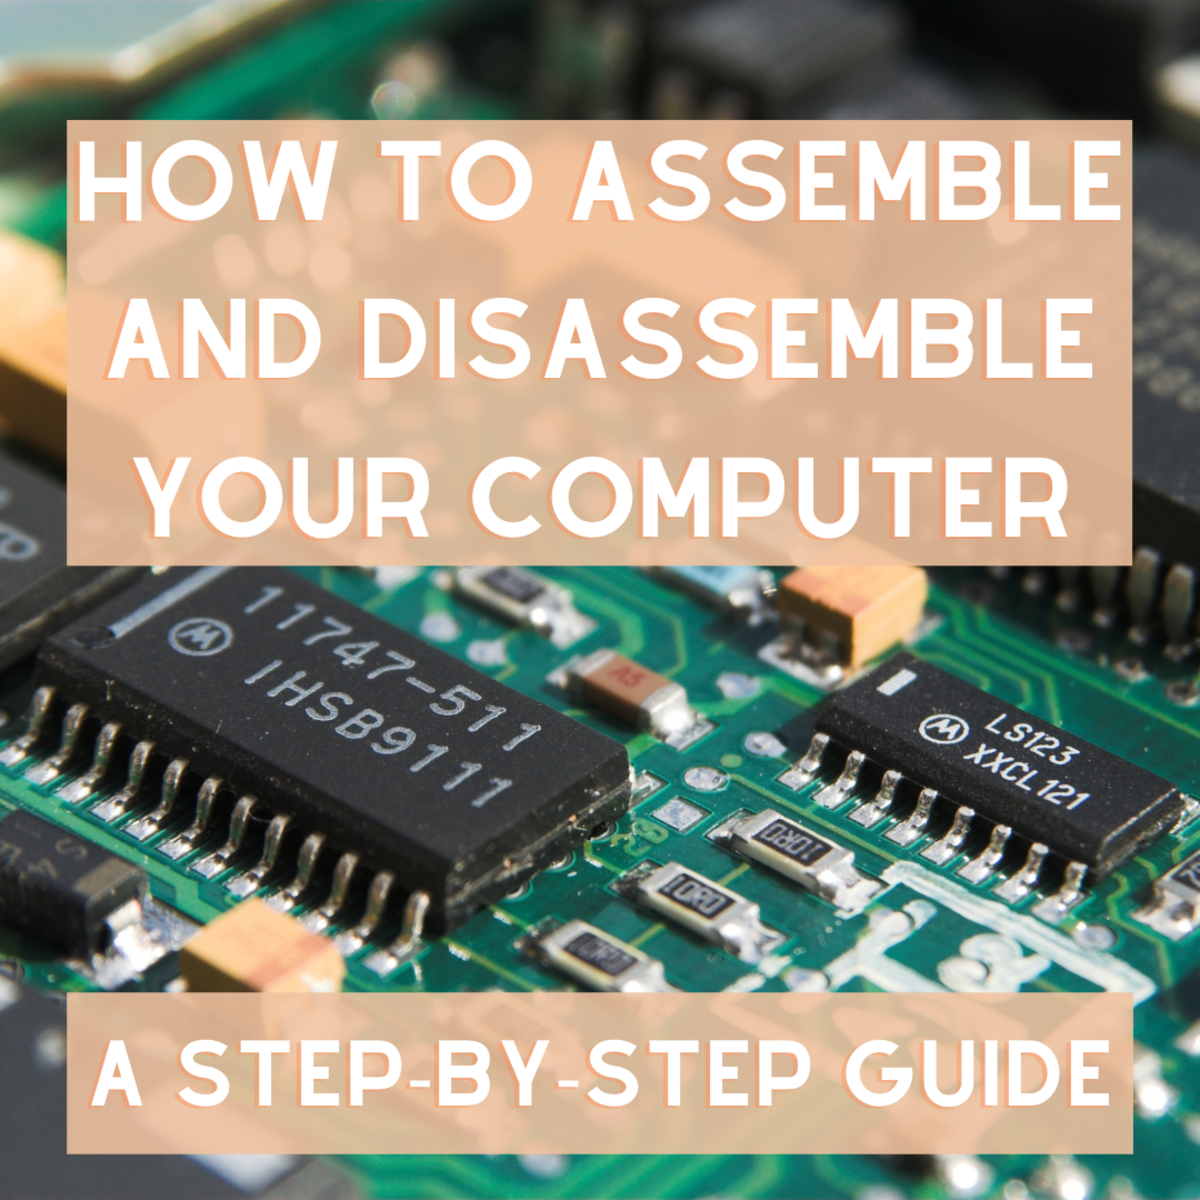 A Guide to Disassembling and Assembling a Computer System